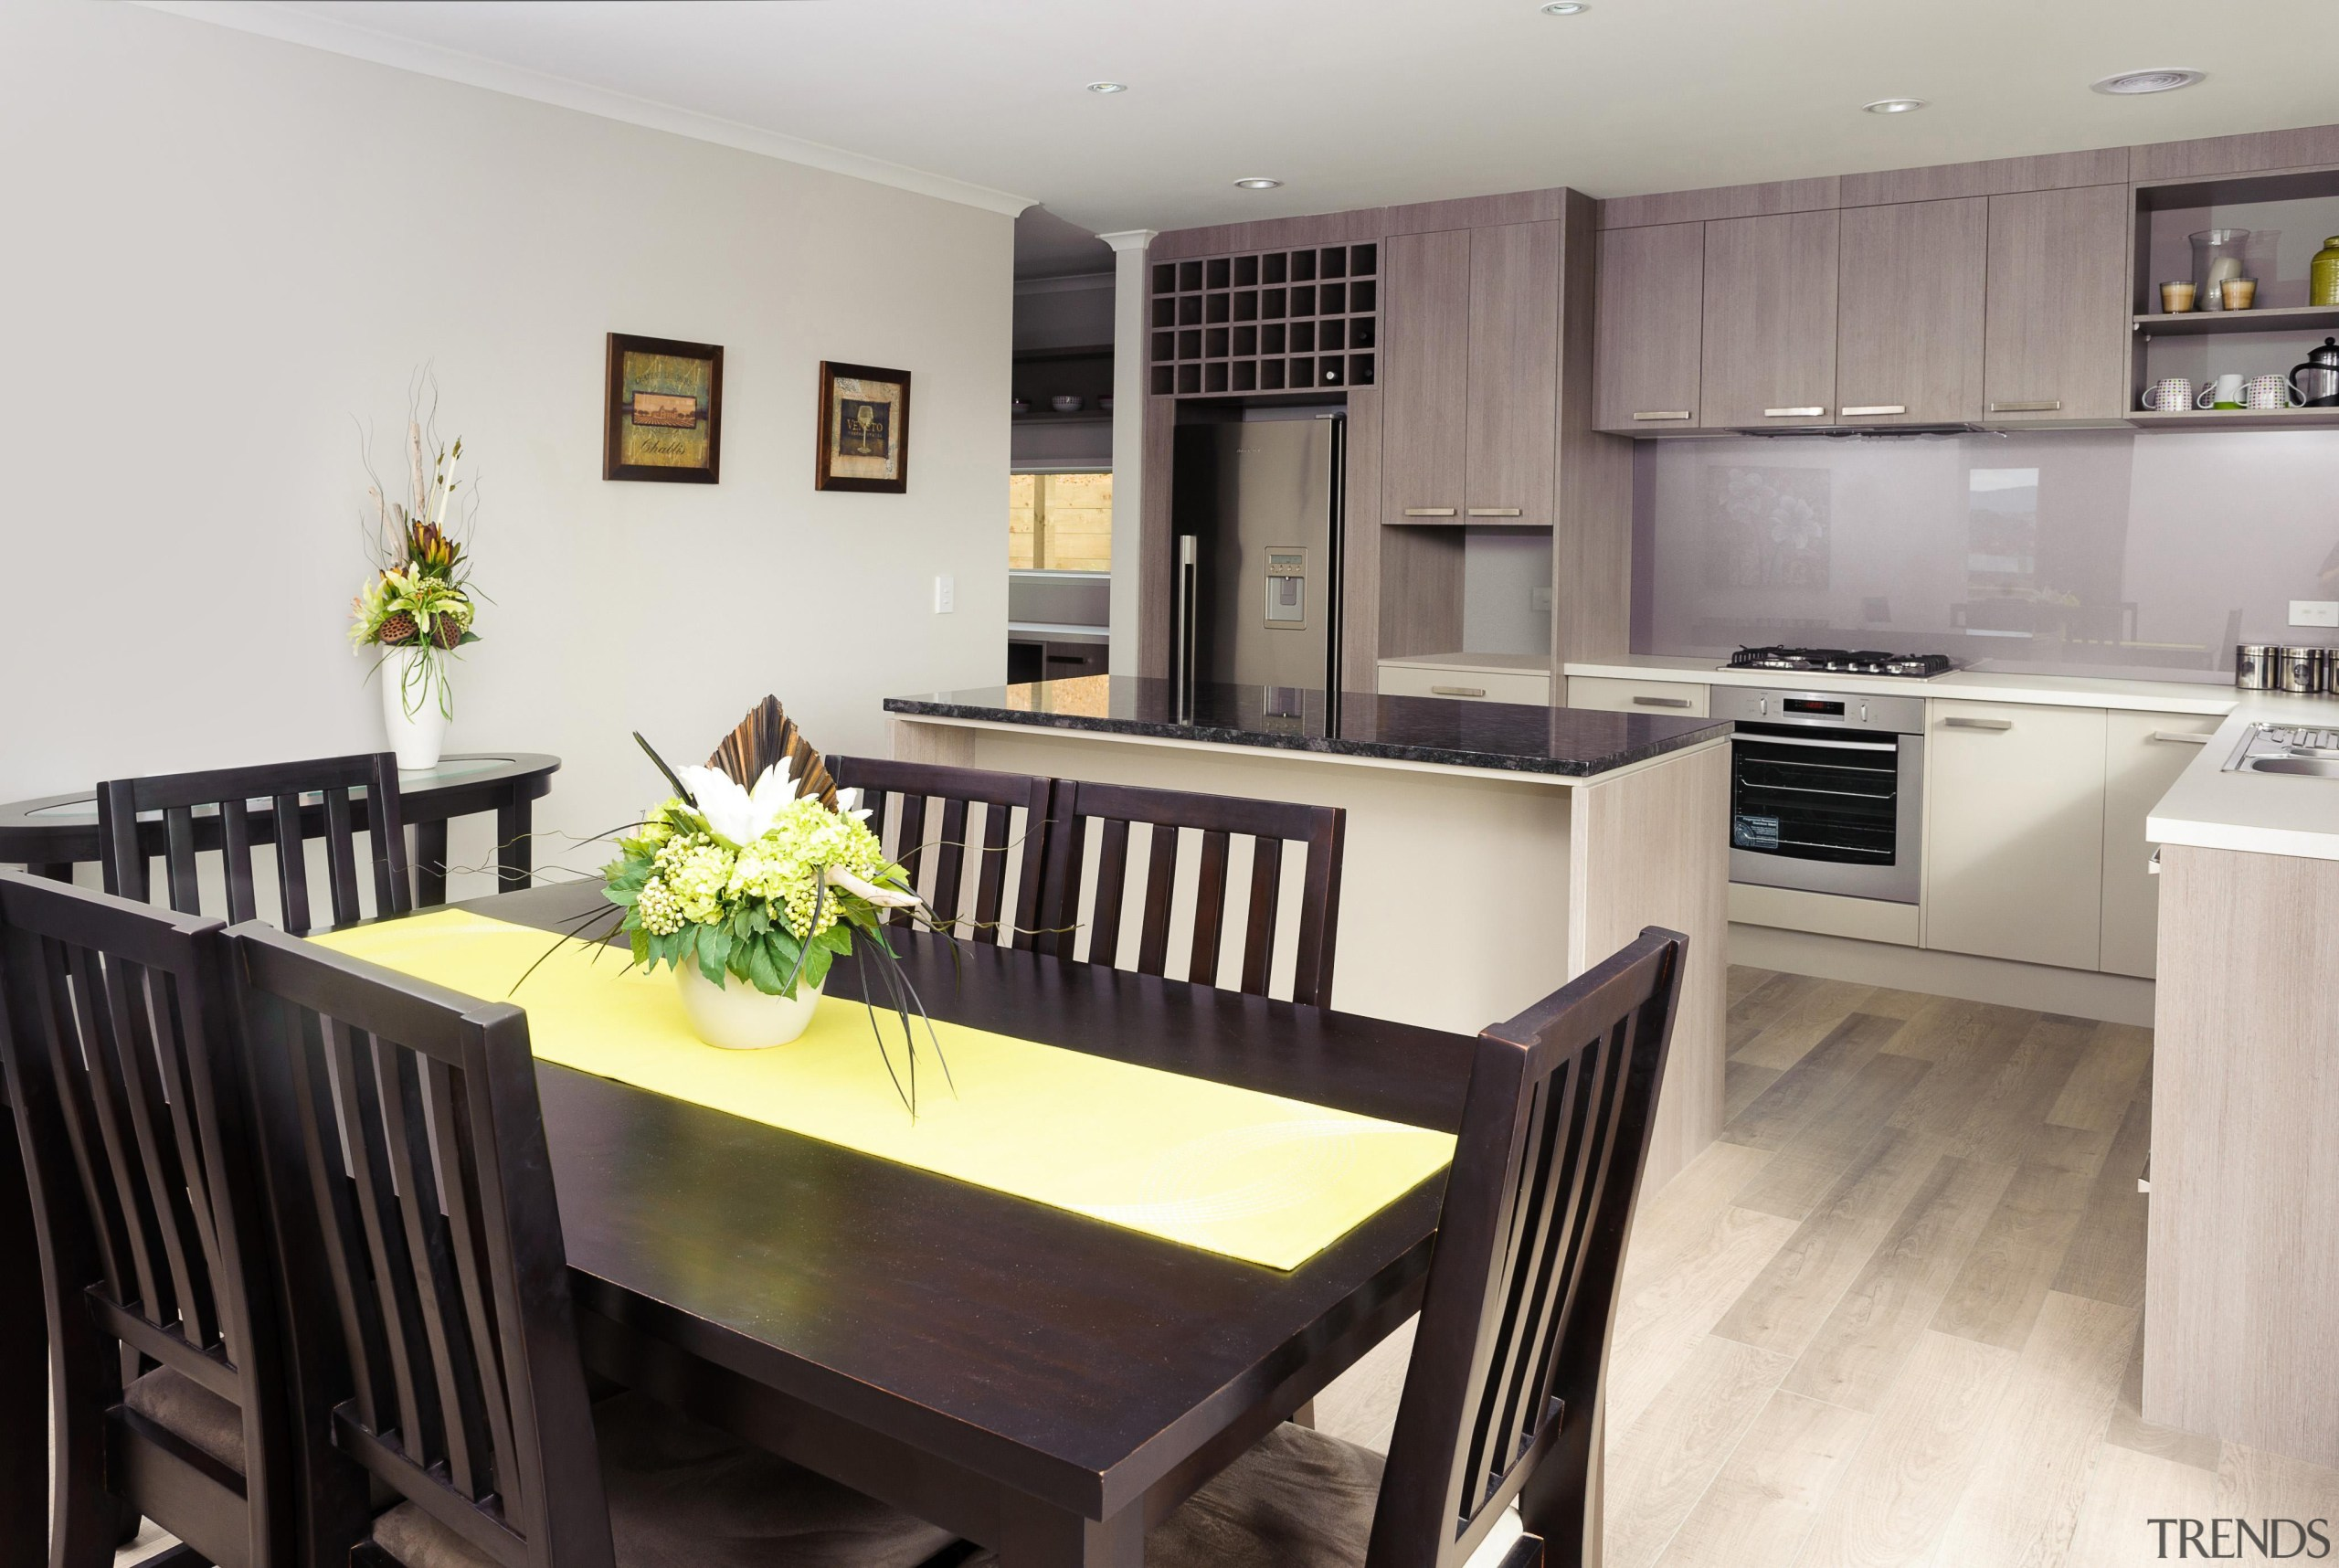 Dining areaFor more information, please visit www.gjgardner.co.nz countertop, dining room, interior design, kitchen, property, real estate, room, gray